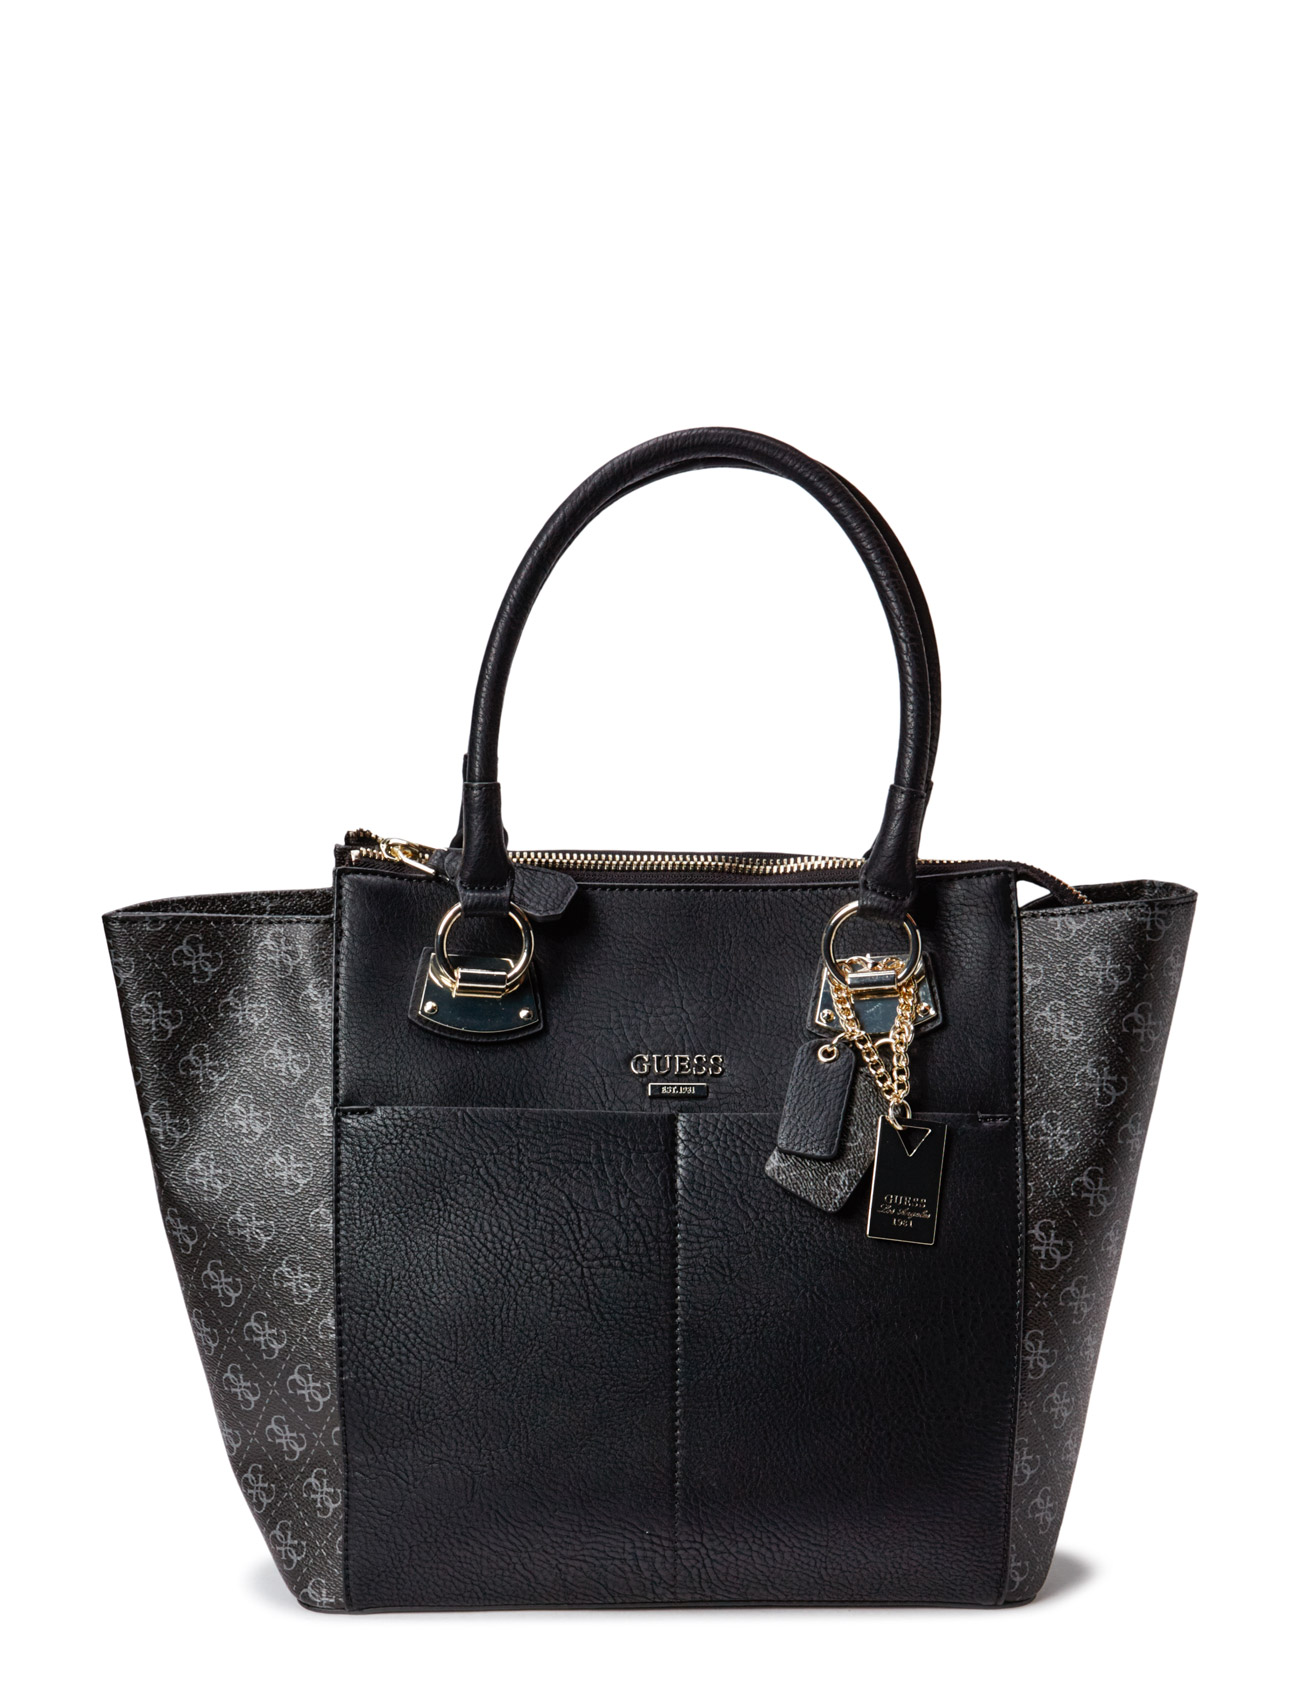 Privacy Carryall